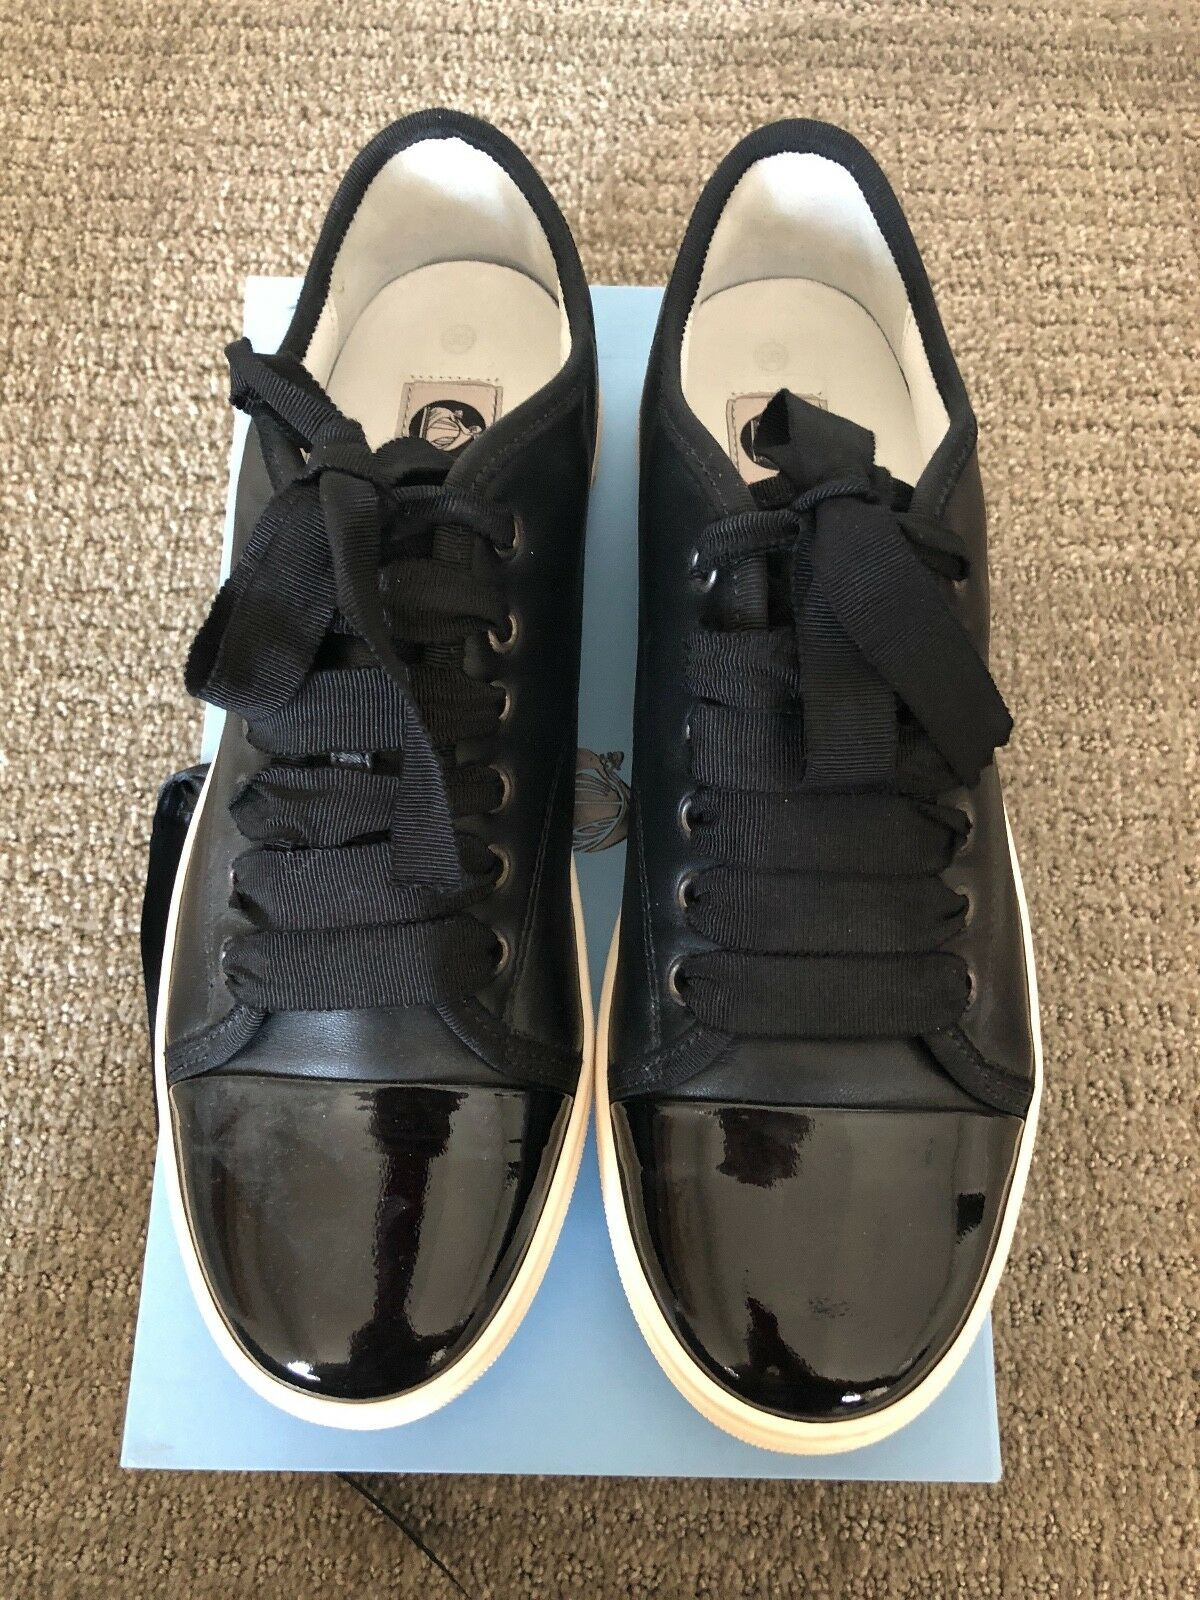 LANVIN Damenschuhe LEATHER SNEAKERS SNEAKERS LEATHER , BLACK, SIZE 9EU d03fc3